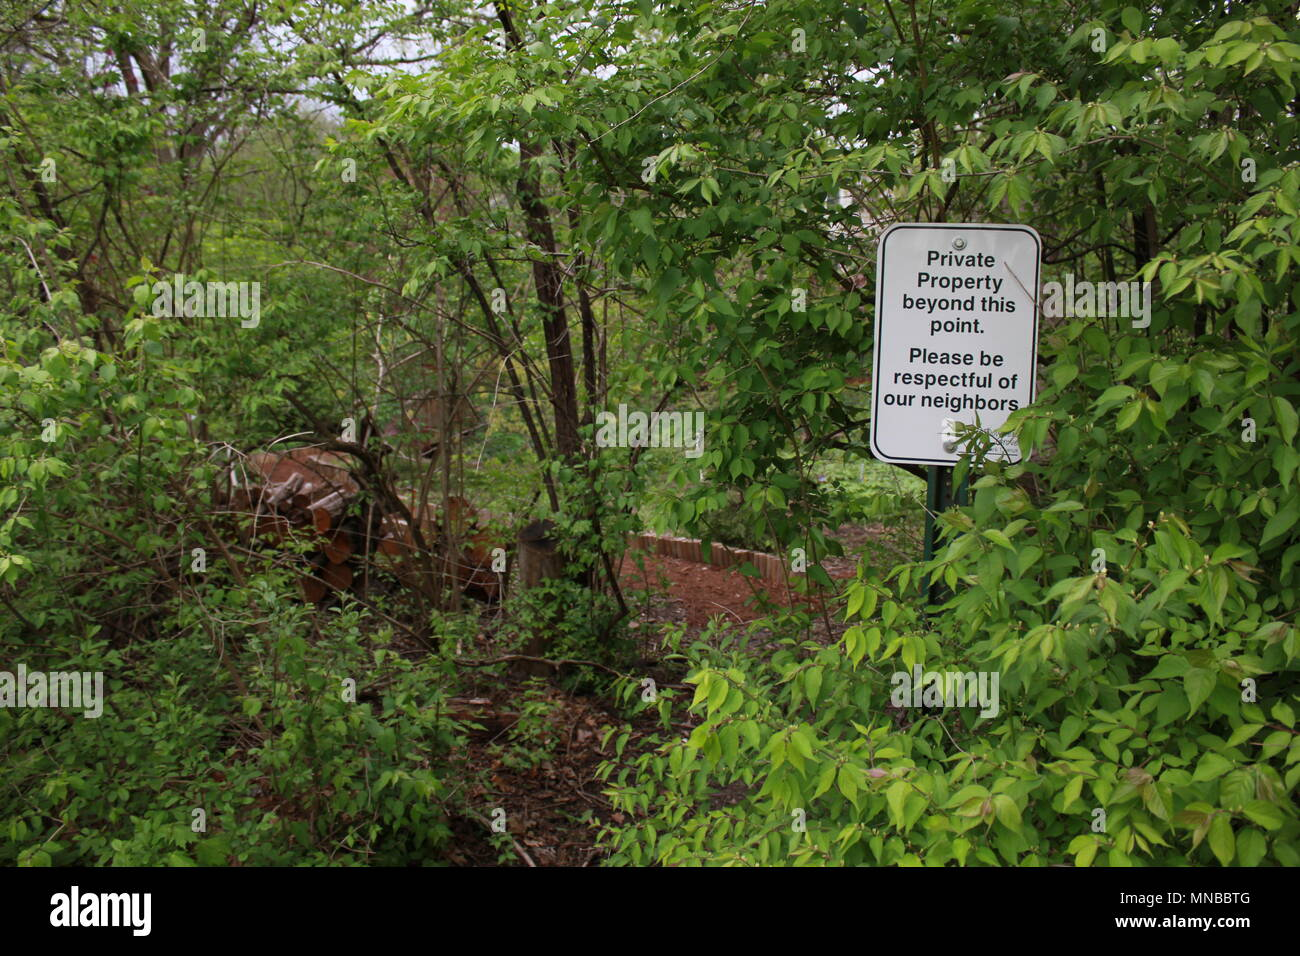 Warning sign asking people to be respectful of neighbors and designating private property lines. - Stock Image